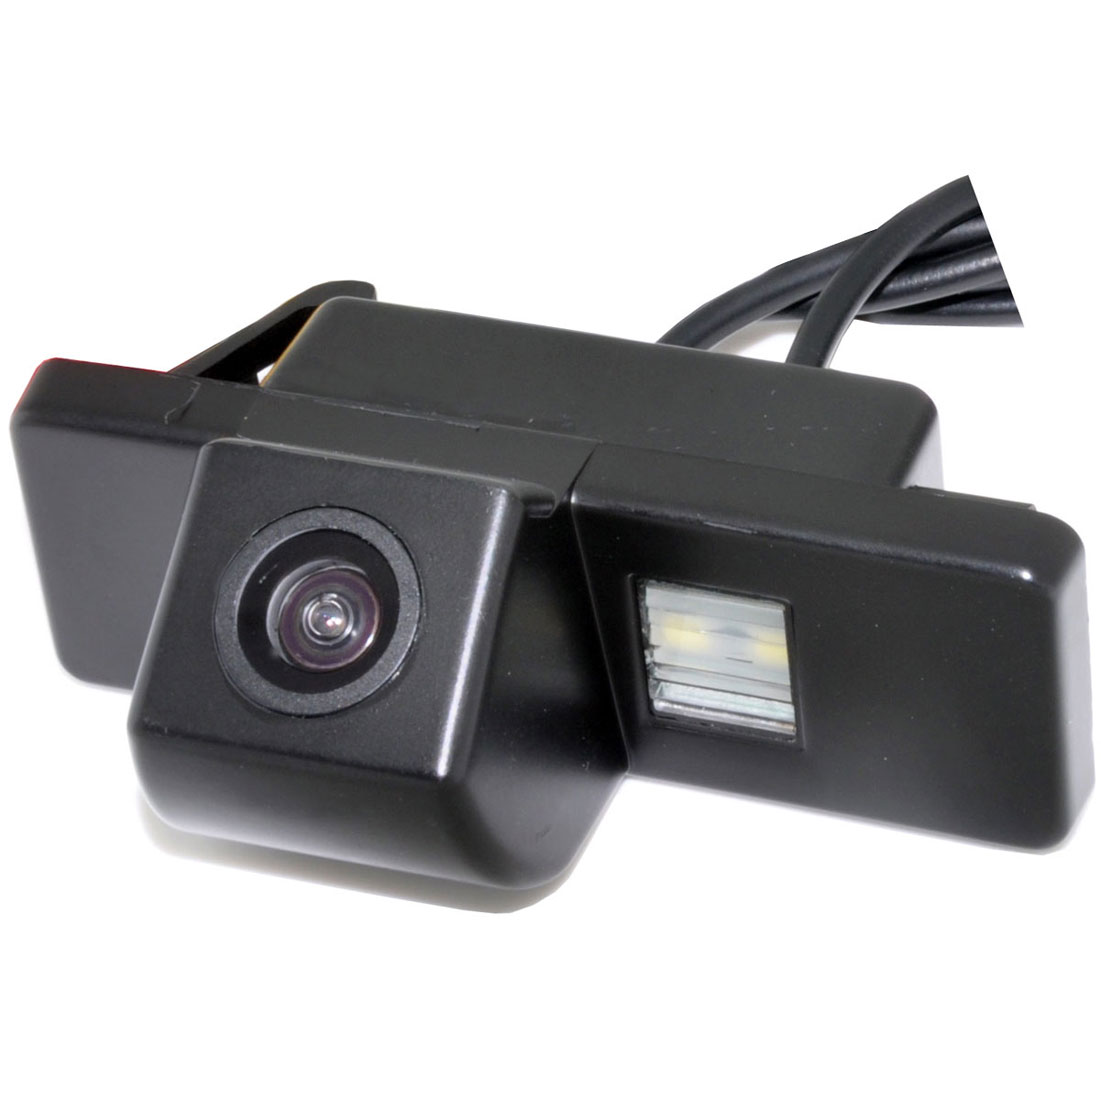 hd ccd car rear view reverse camera for nissan qashqai x trail geniss citroen c4 c5 c triomphe. Black Bedroom Furniture Sets. Home Design Ideas